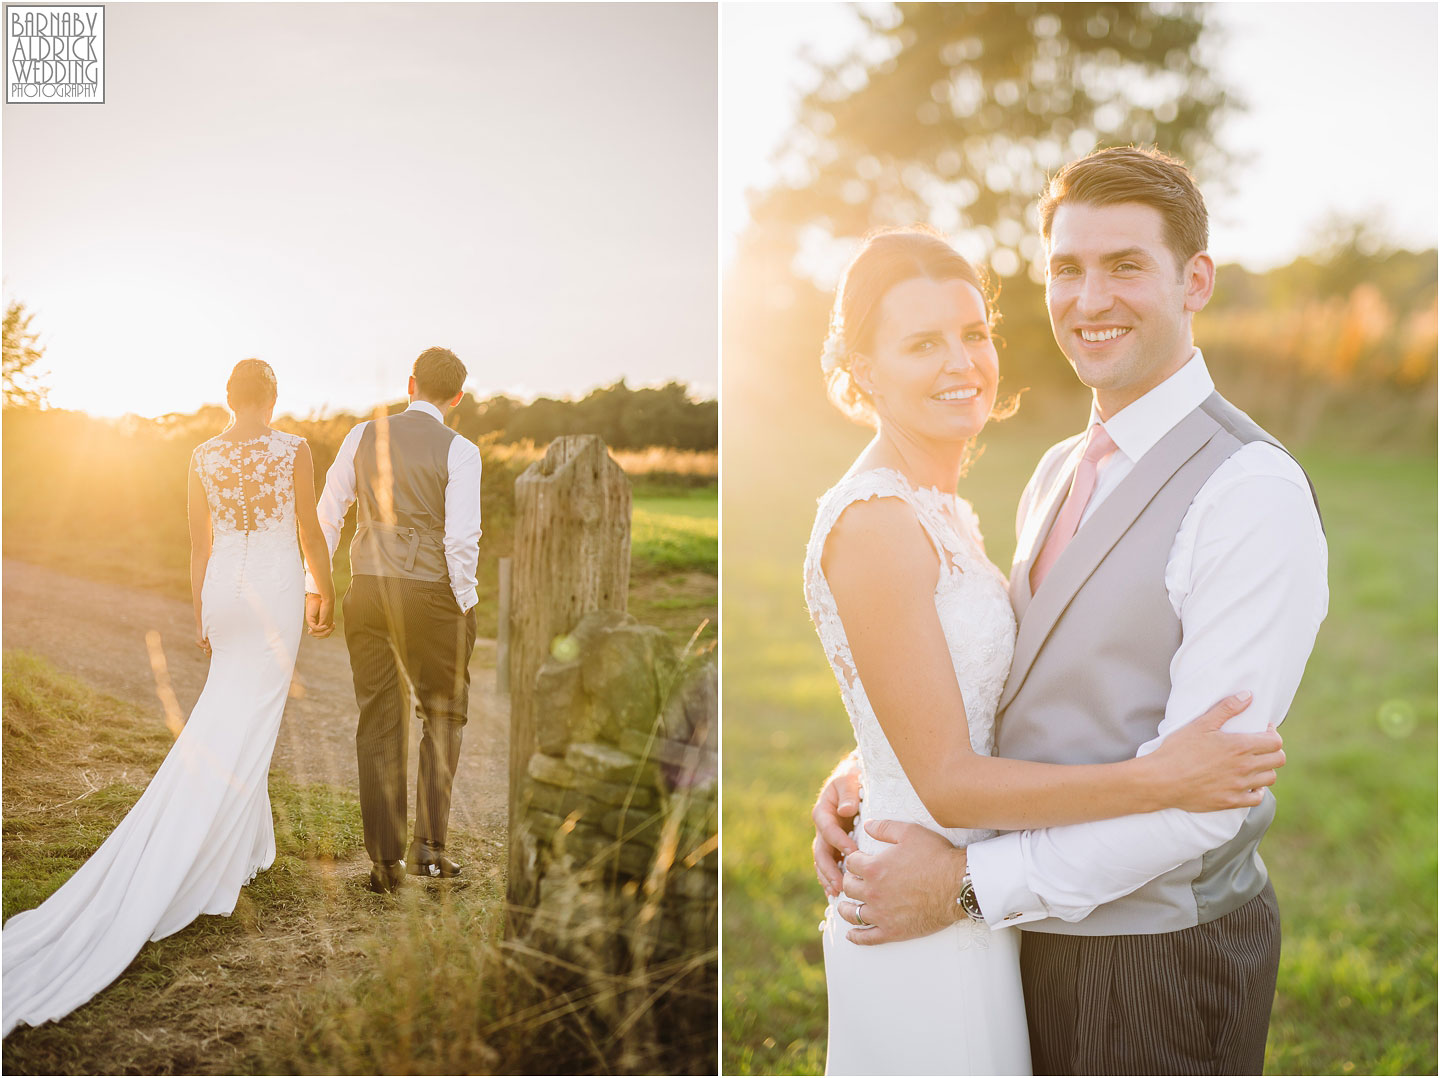 Golden Hour portraits at a Wedding in a field near Farnley Tyas in Yorkshire